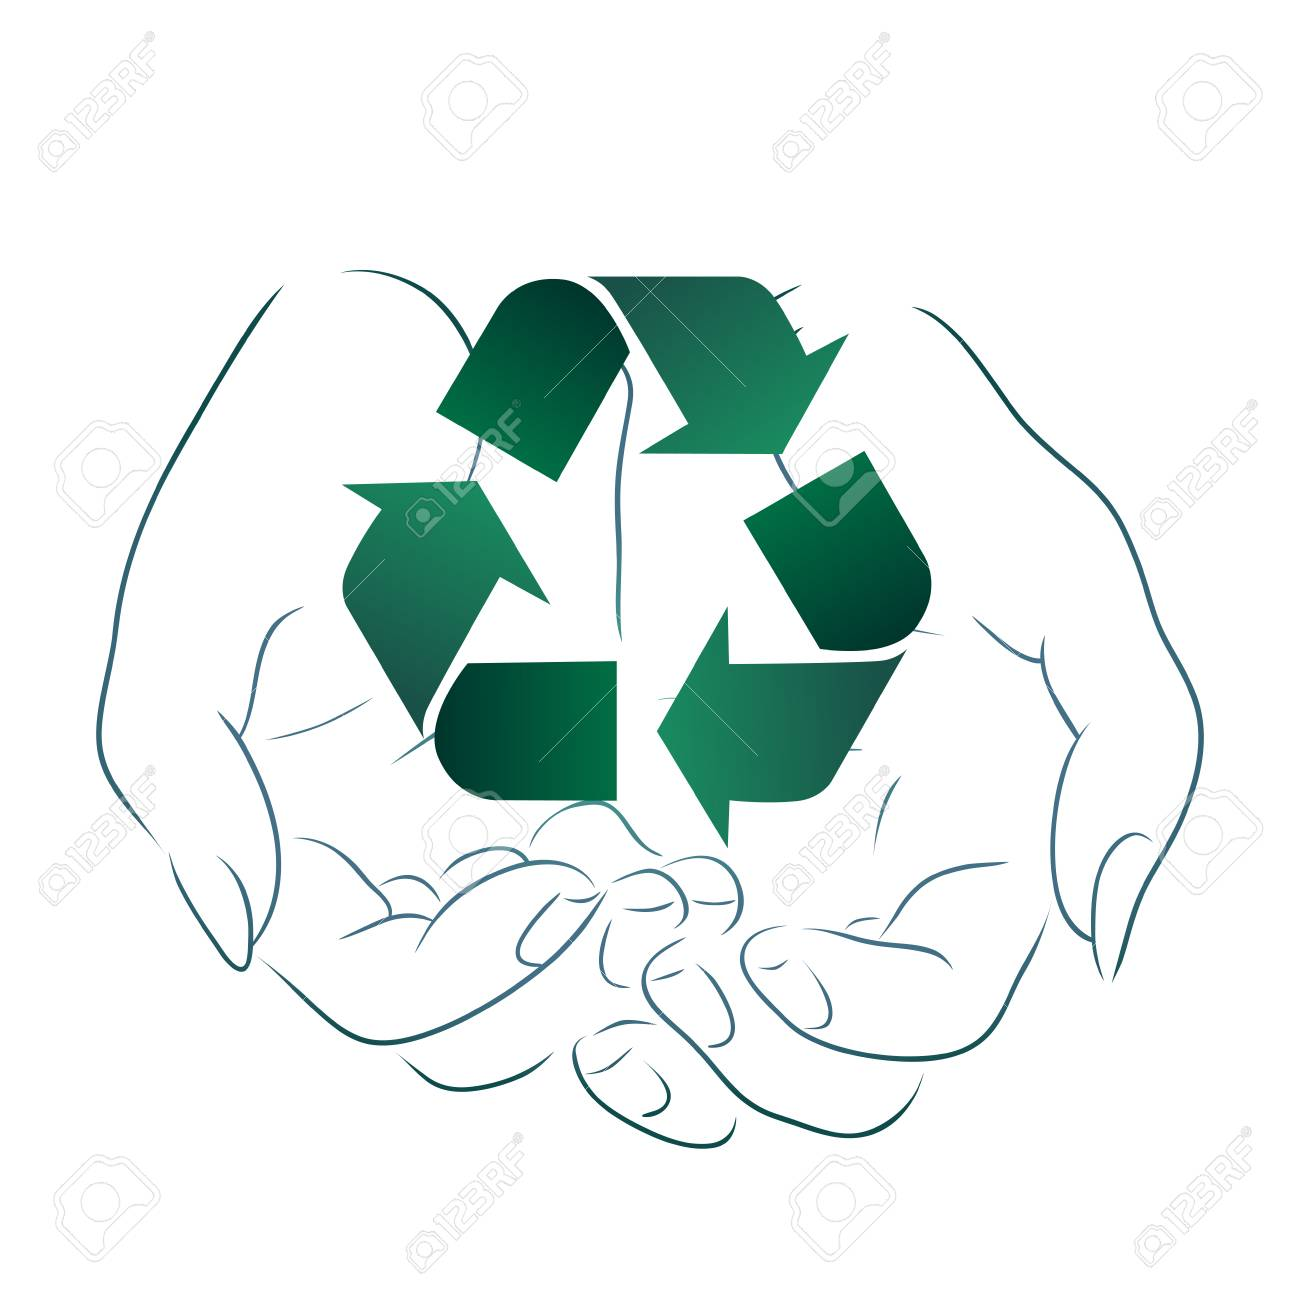 Outline drawing of hands holding a sign of recycling. Recycling and Zero Waste. Ecological vector element for logos, icons, banners and your design - 121044967